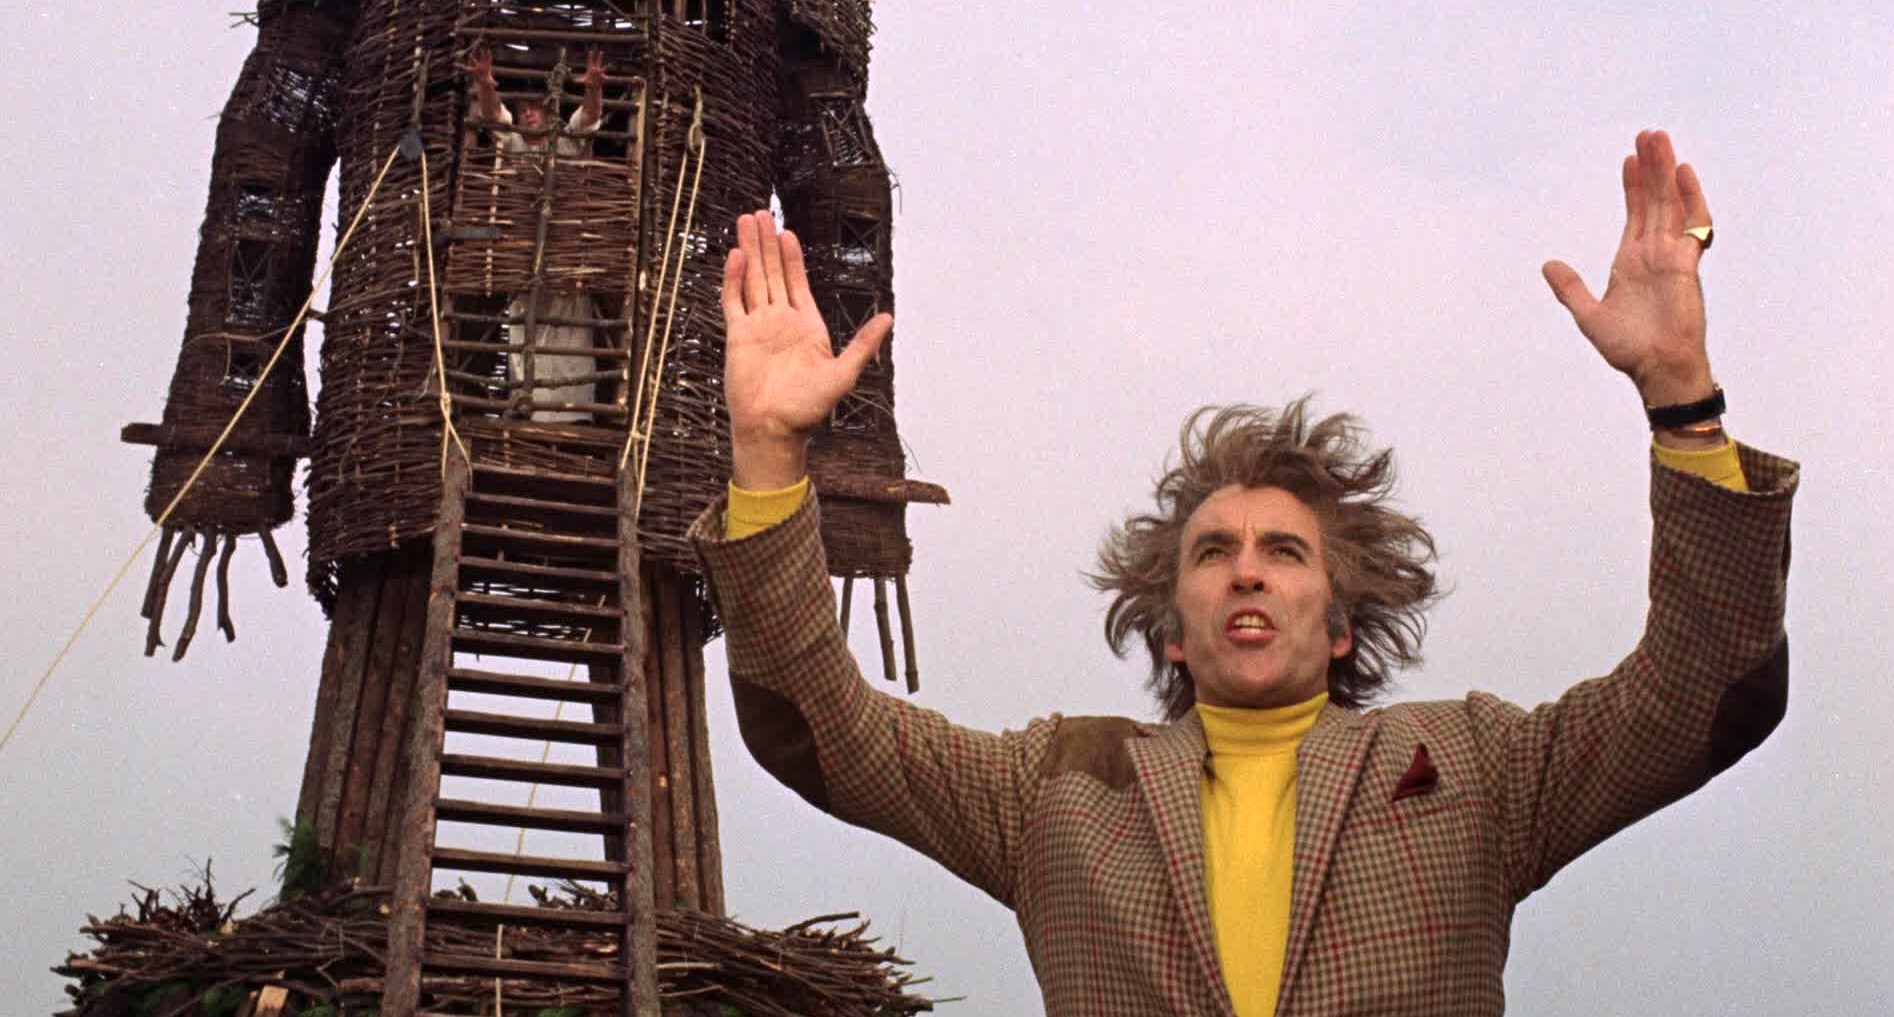 Lord Summerisle holds two hands in the air as he preaches to the crowd and prepares light the wicker man and Sgt. Neil Howie aflame